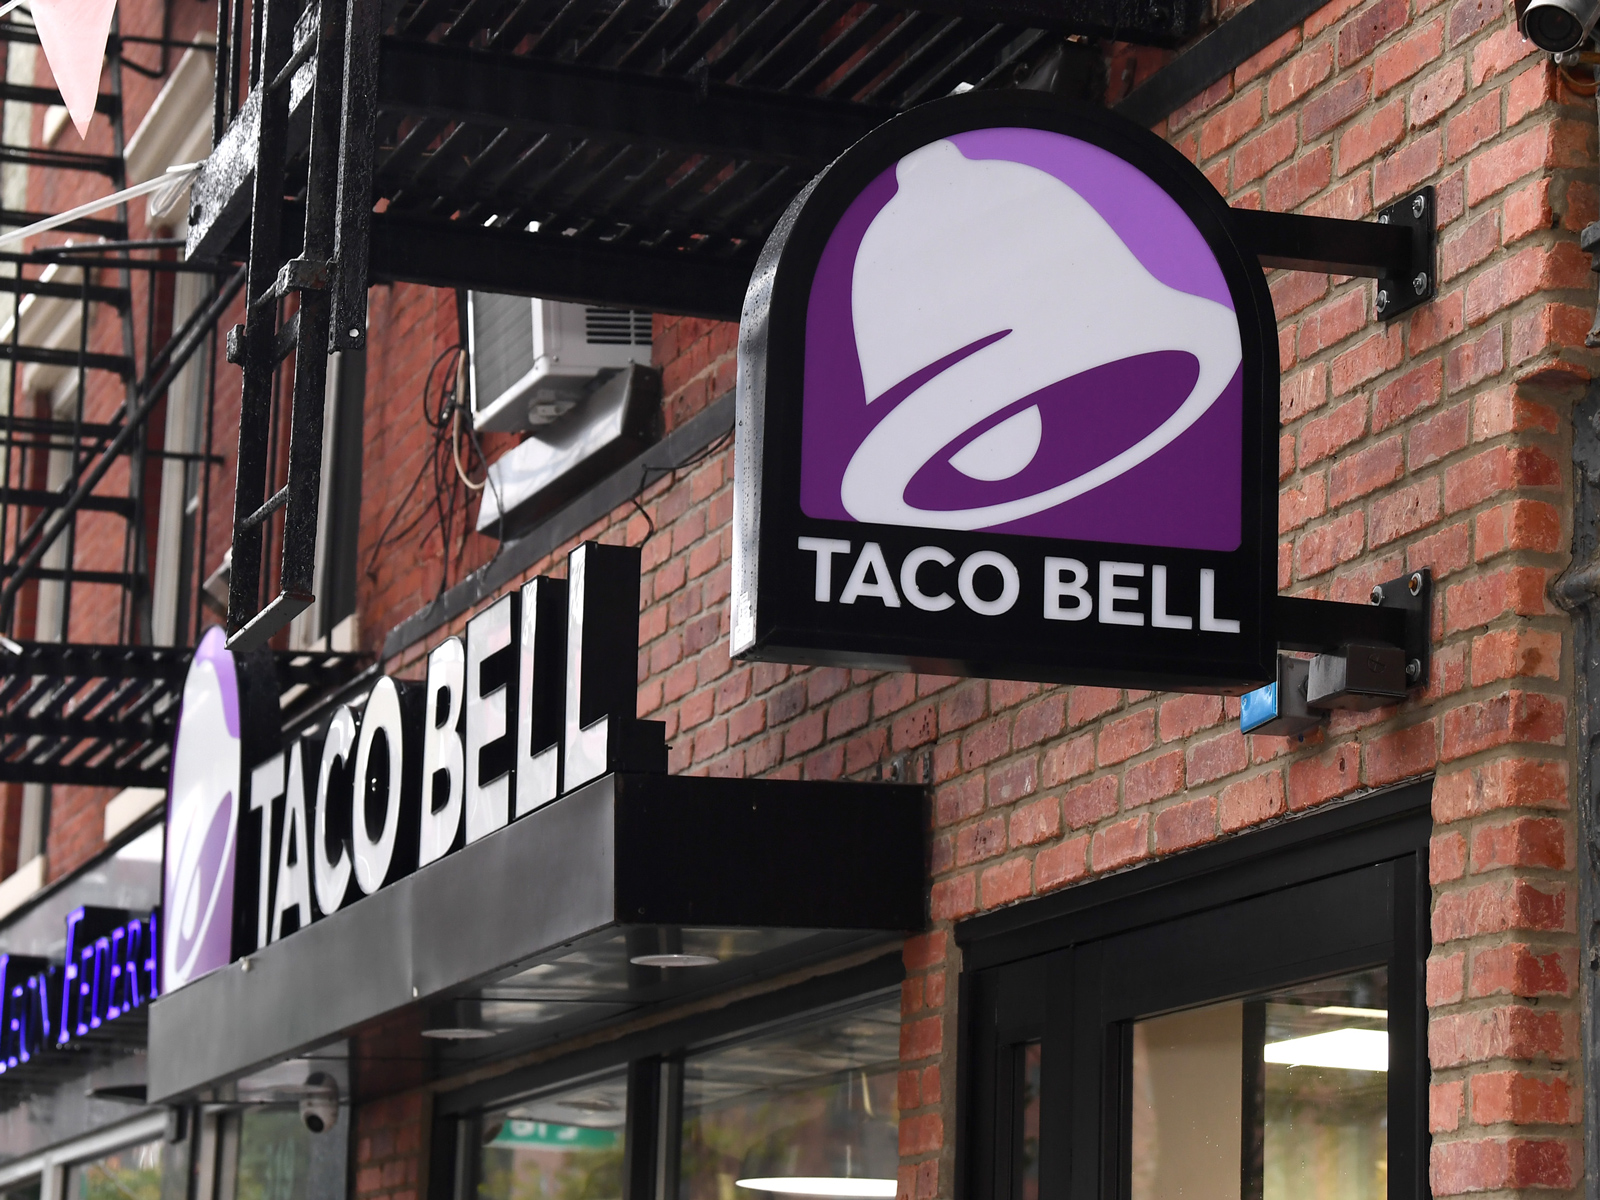 Don't Expect to See 'Impossible Tacos' or 'Beyond Burritos' at Taco Bell